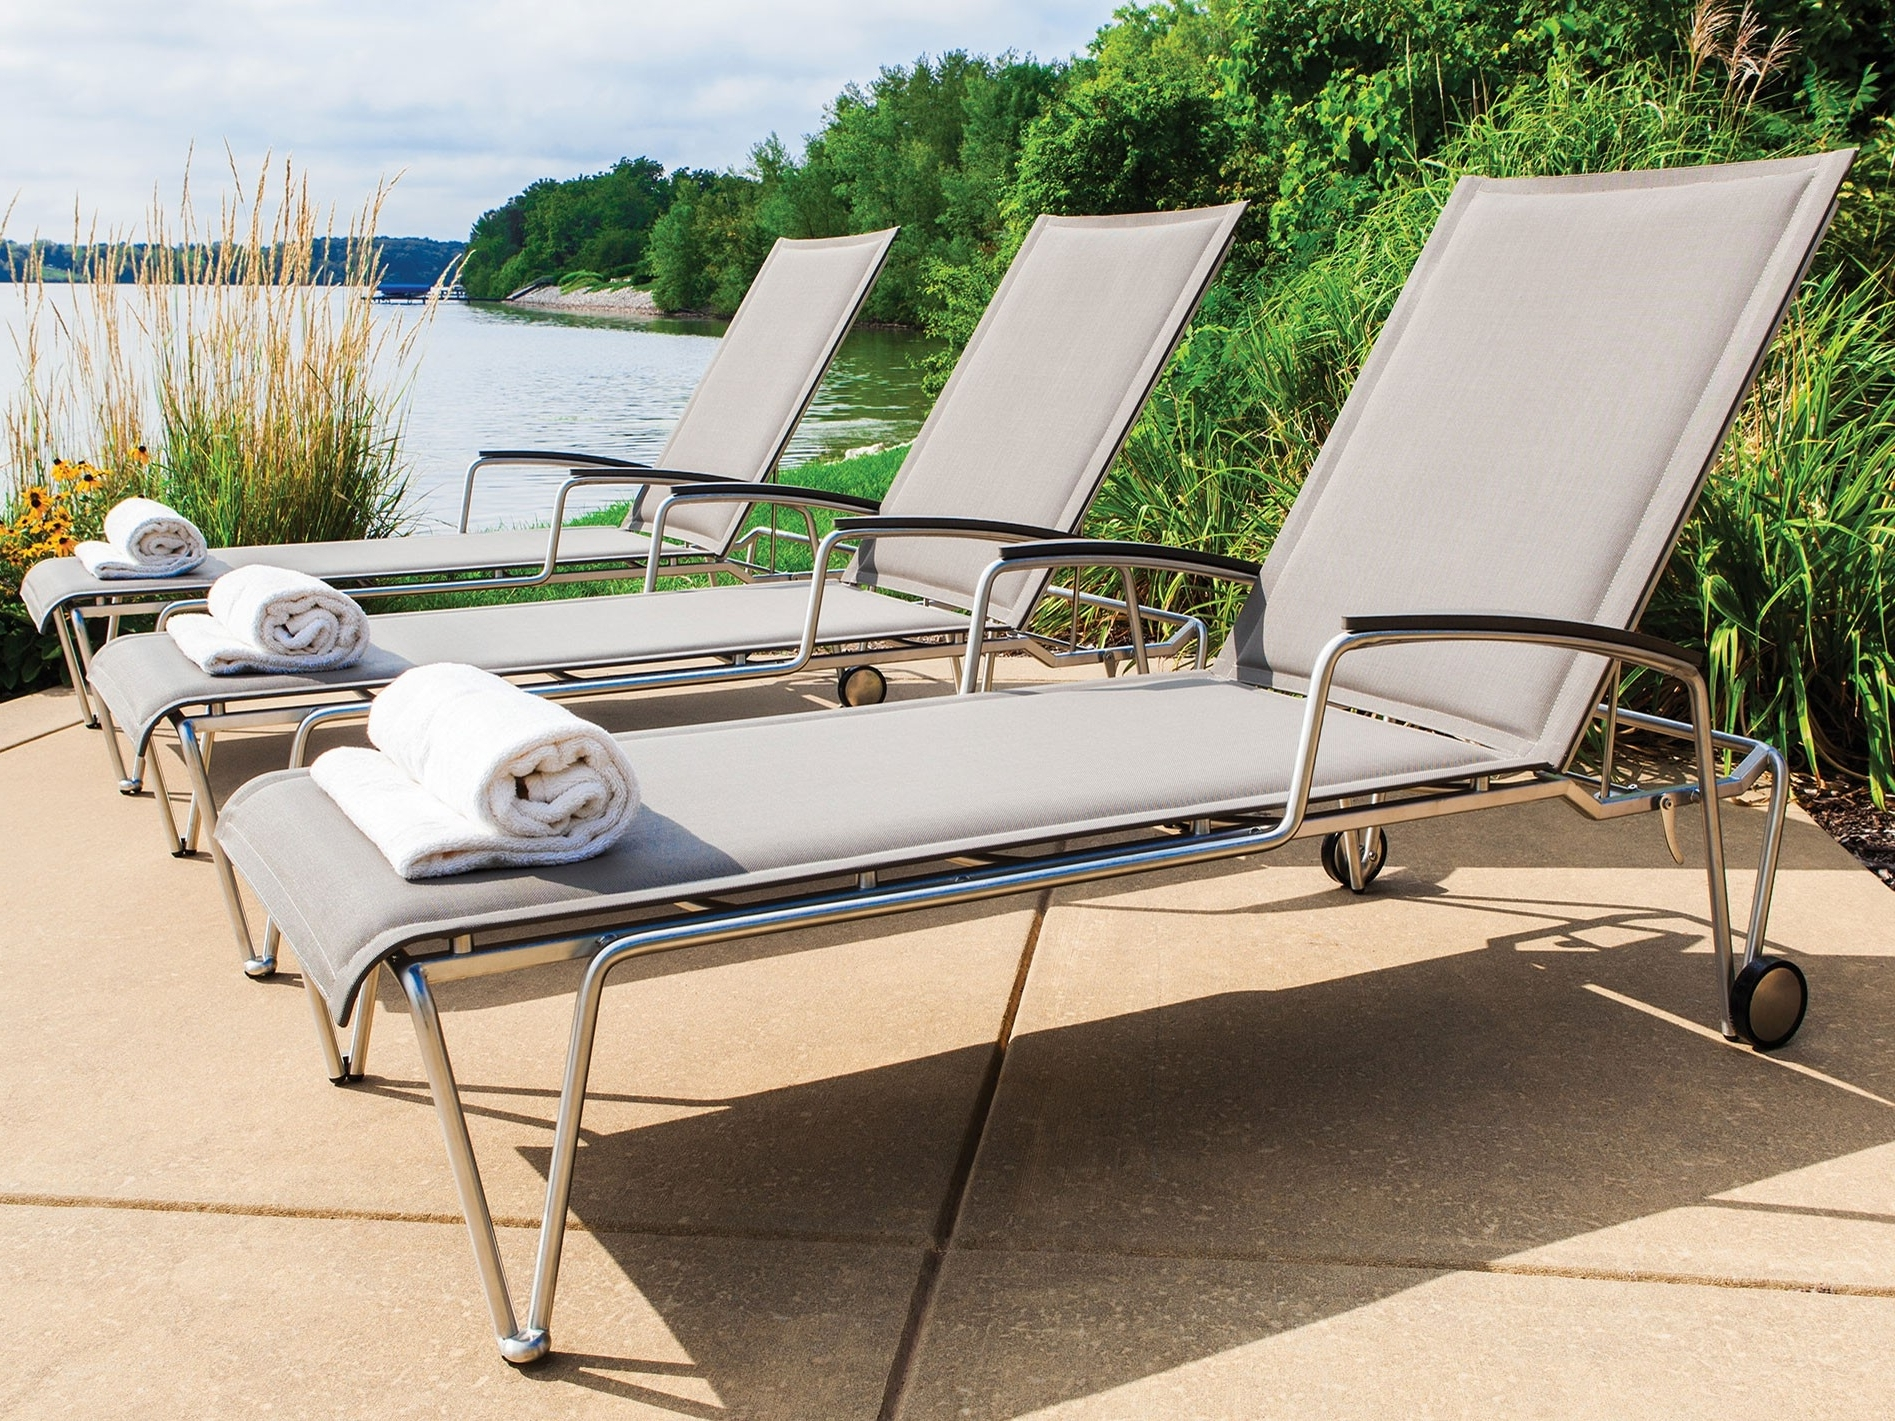 New Pool Chaise Lounge — Stereomiami Architechture : Make A Pool Intended For Preferred Pool Chaises (View 3 of 15)